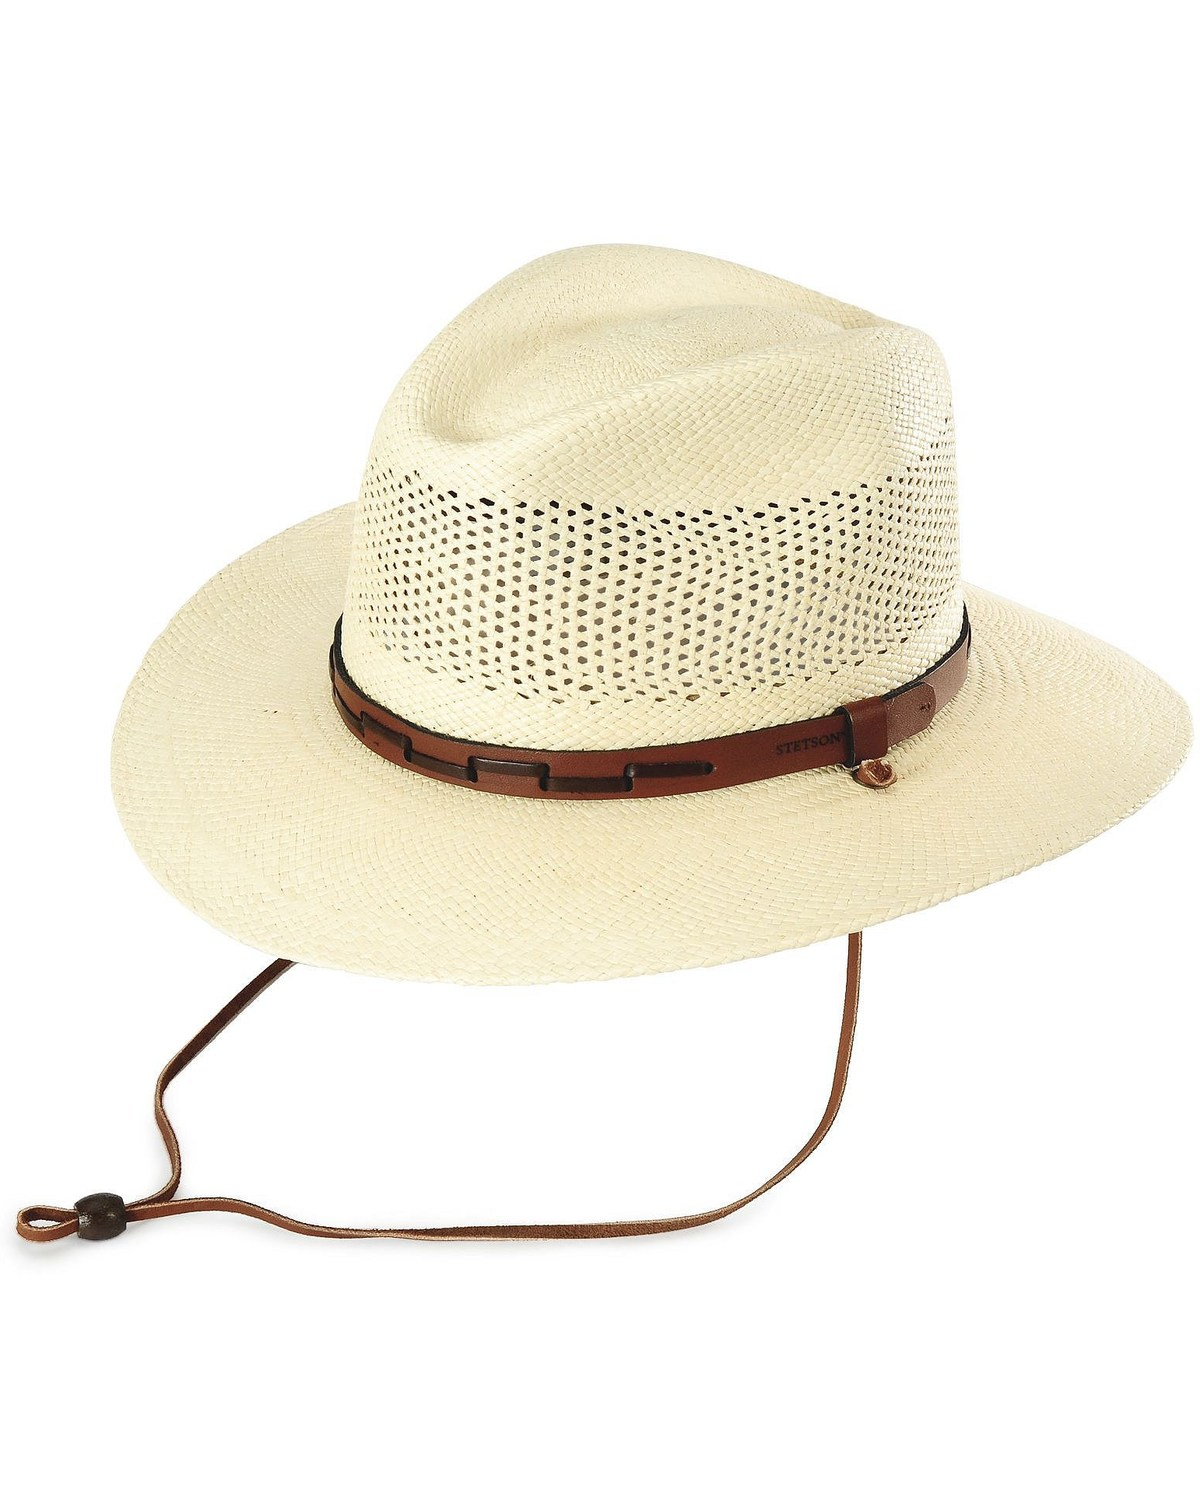 de97a1da Zoomed Image Stetson Airway UV Protection Straw Hat, Natural, hi-res